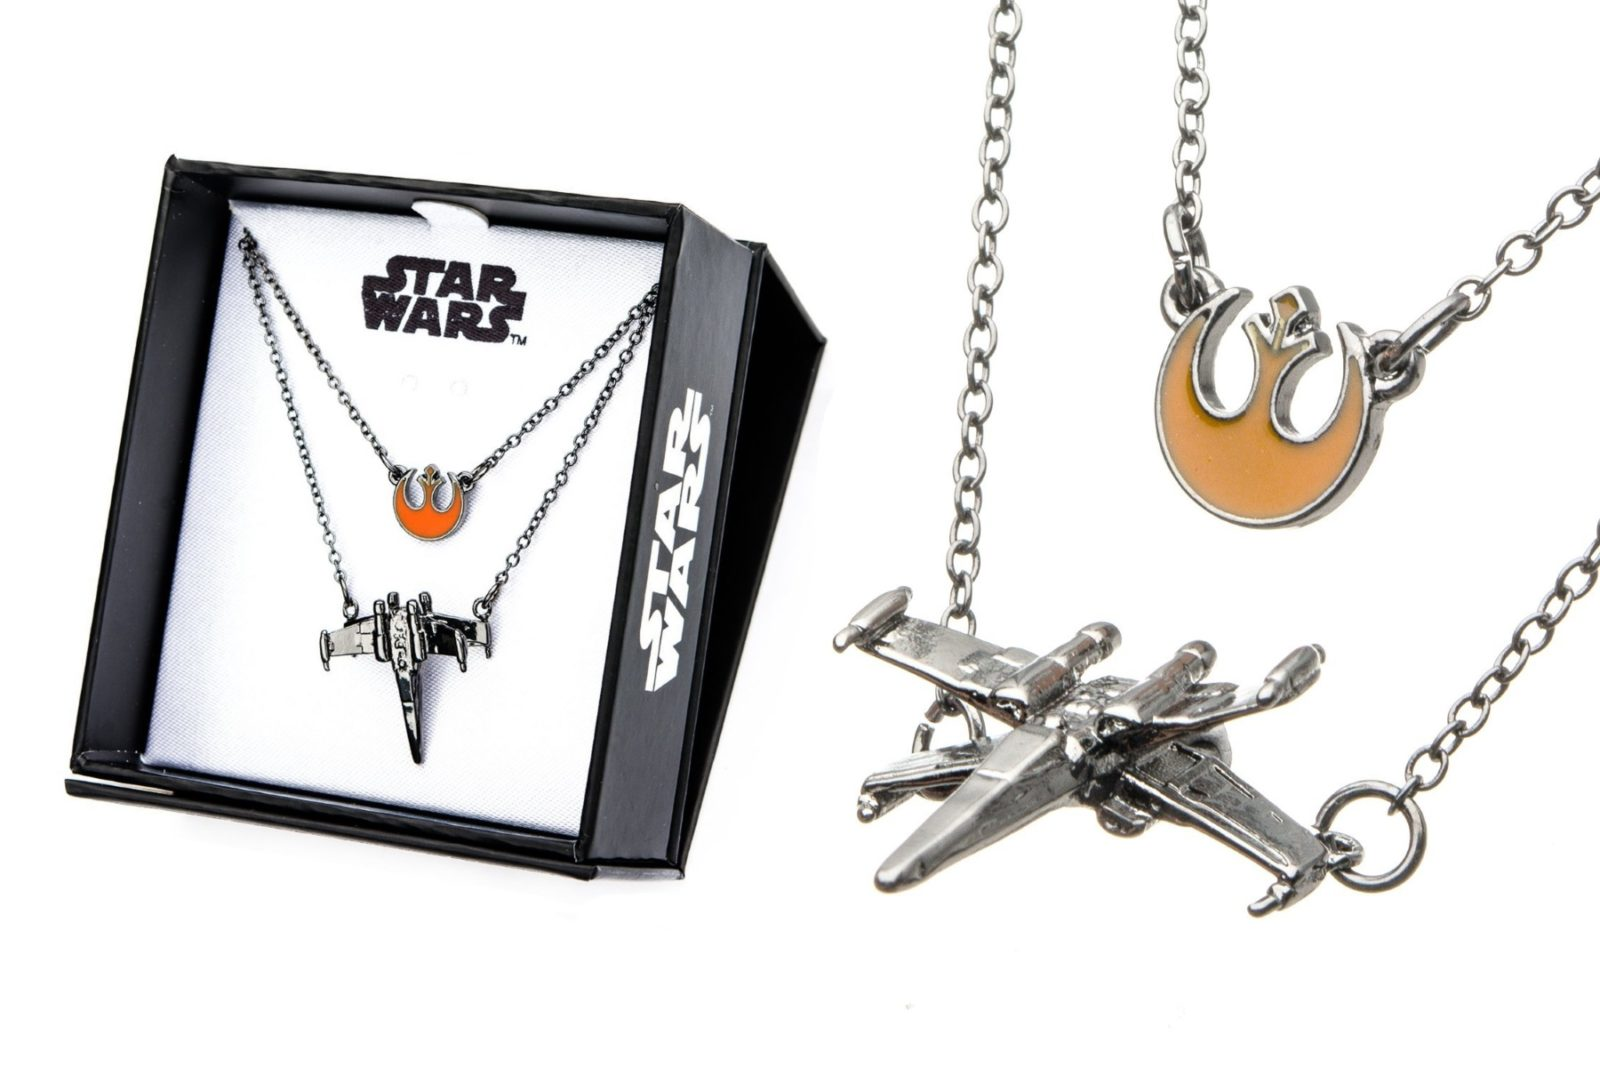 Star Wars Rebel X-Wing Tiered Necklace